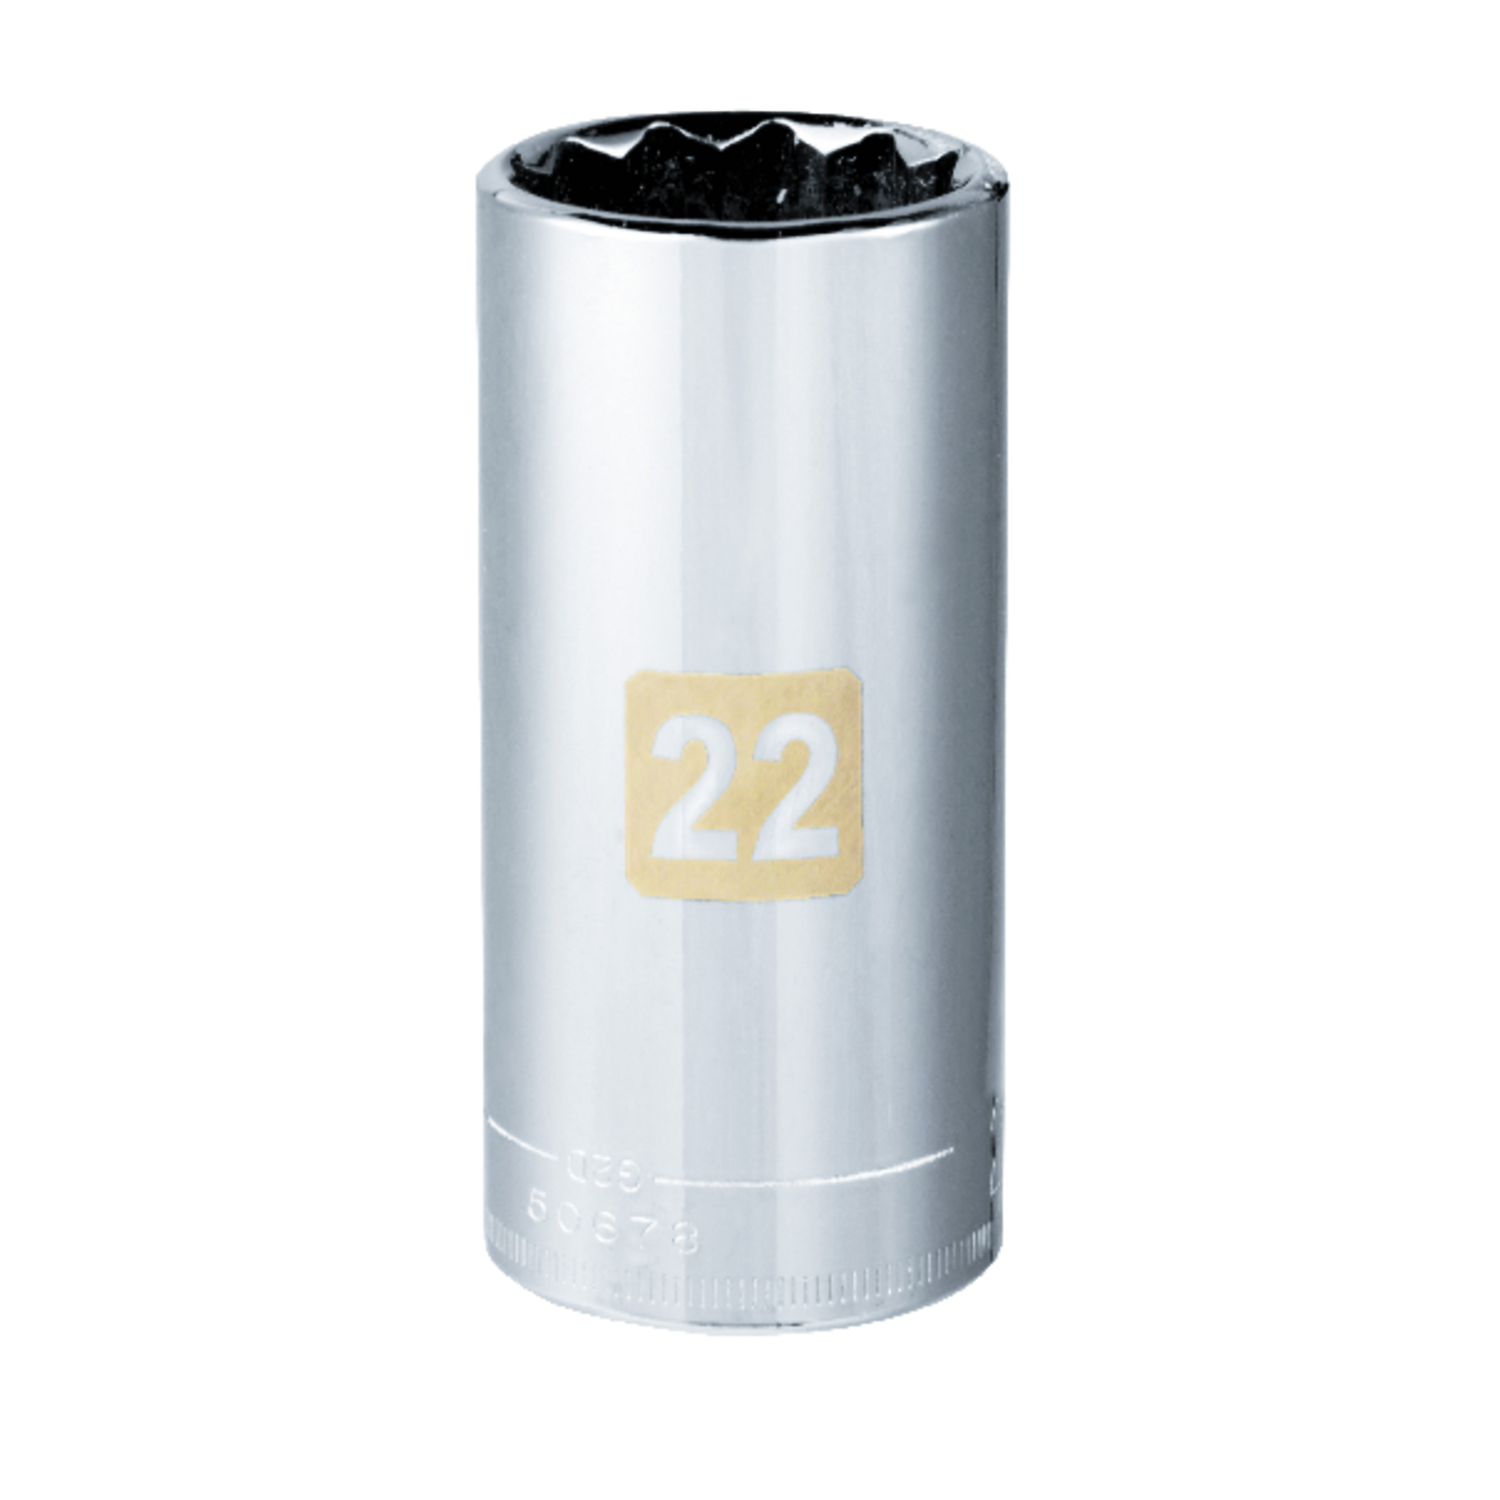 Craftsman  22 mm  x 3/8 in. drive  Metric  12 Point Deep  Socket  1 pc.